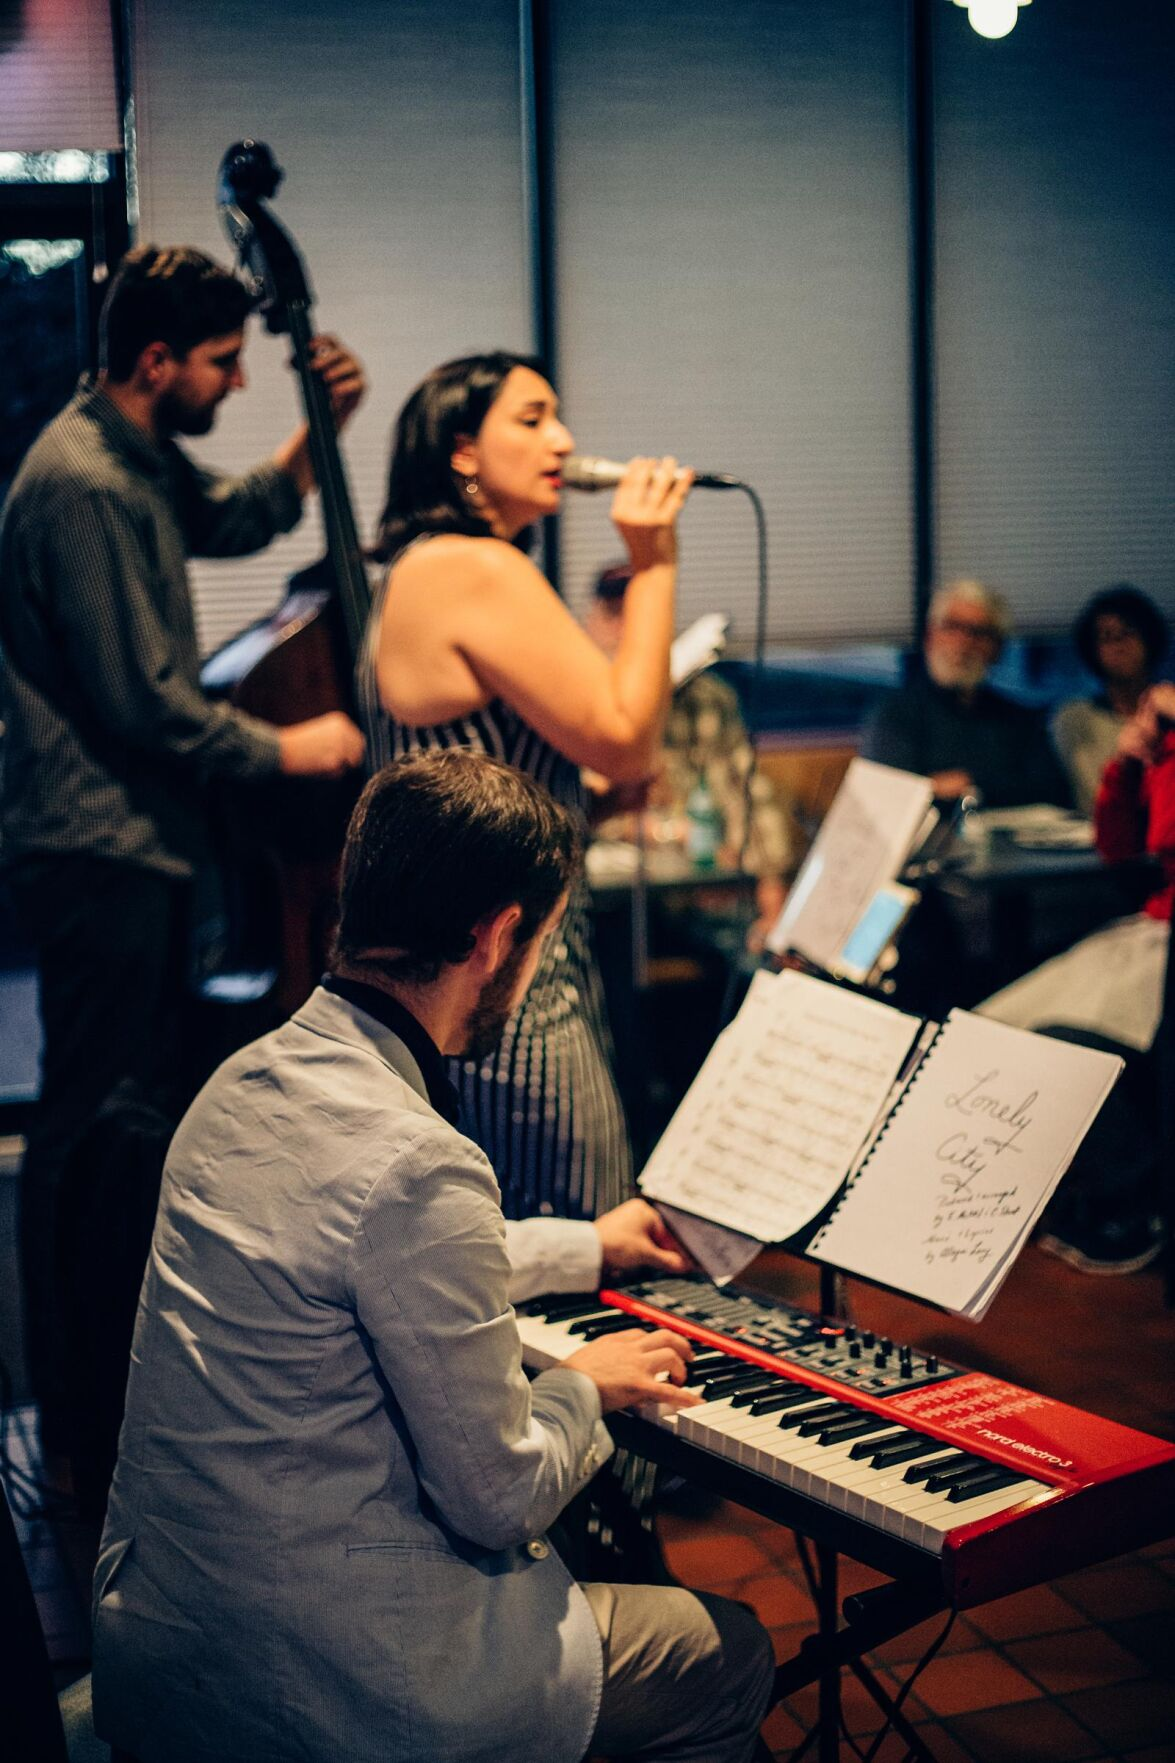 West Hartford's Allegra Levy collabs with John McNeil on fourth album